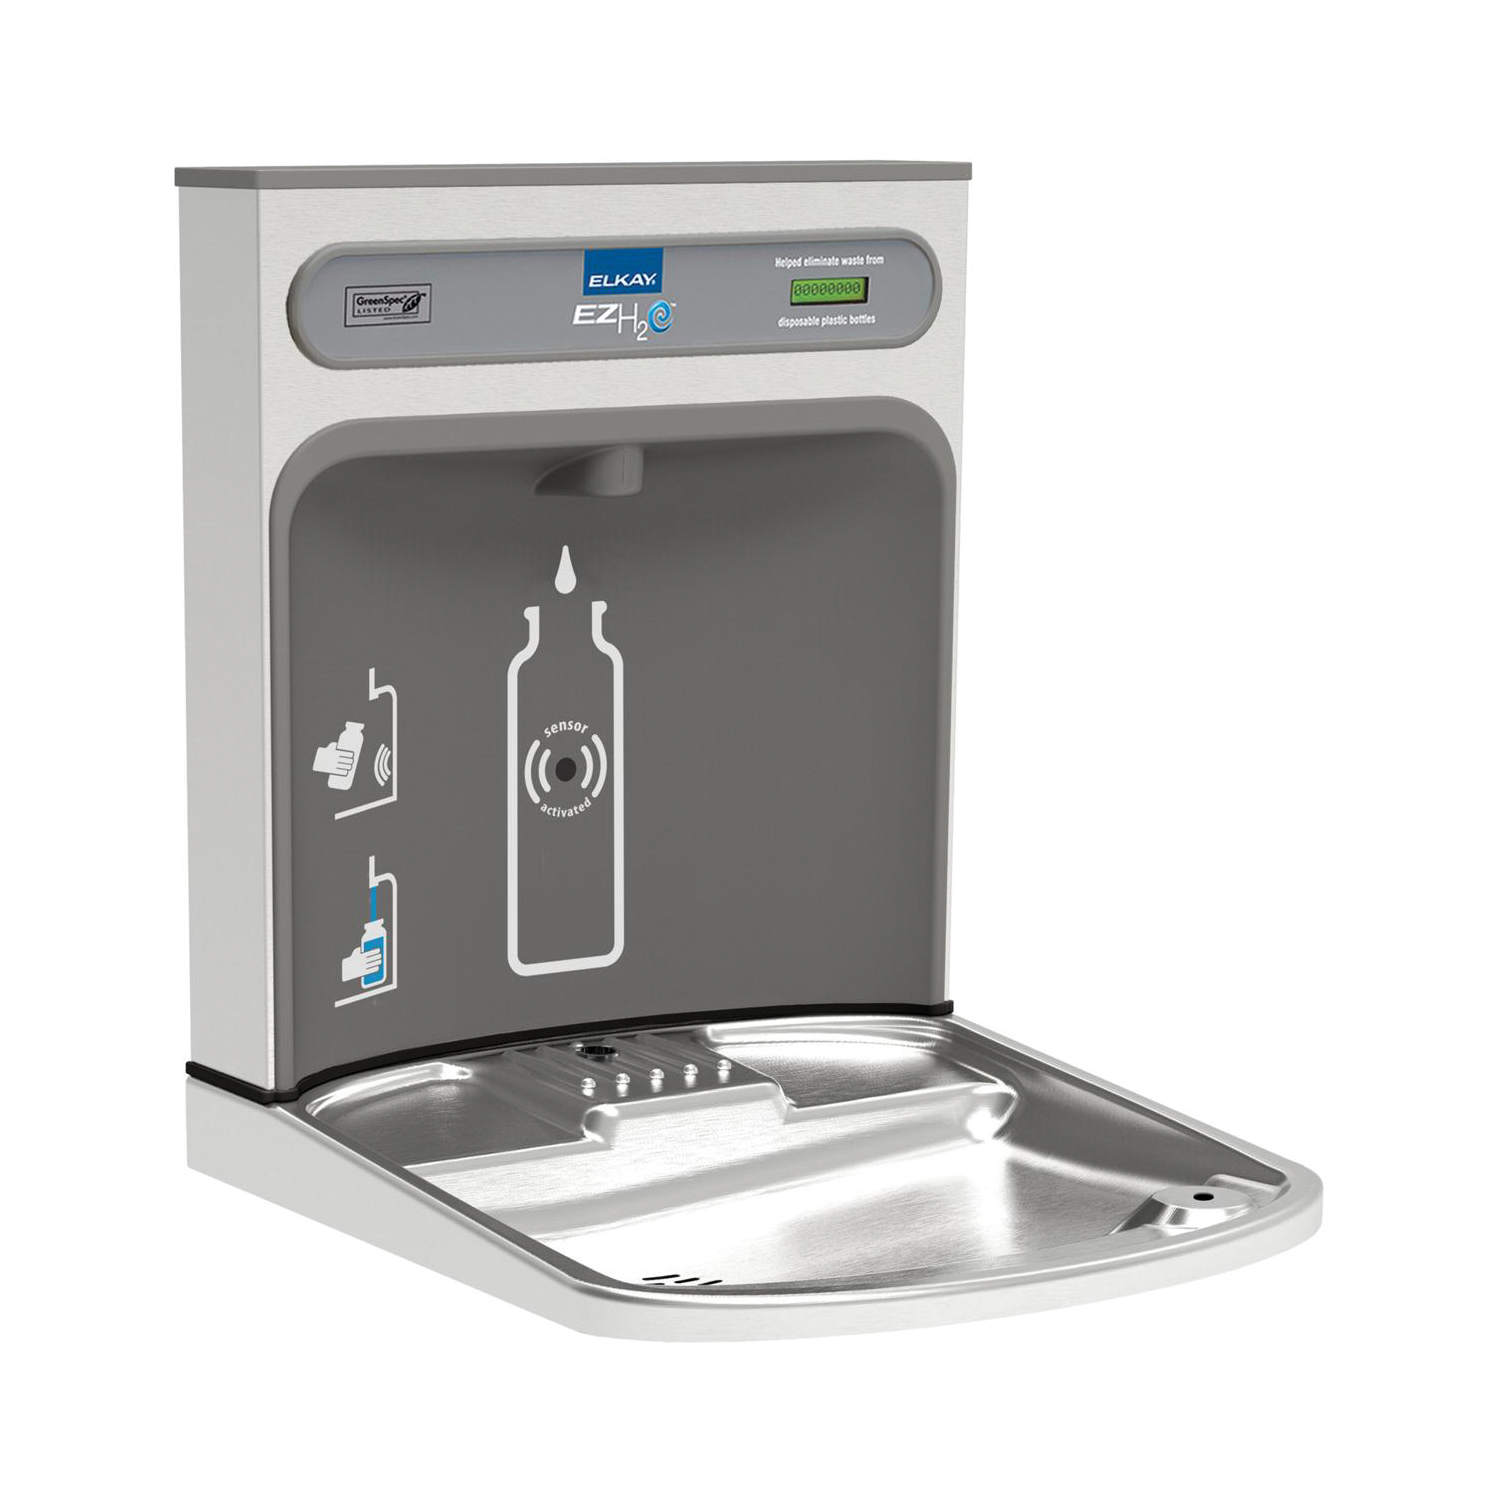 Elkay® EZWSRK EZH2O Non-Filtered Bottle Filling Station, 115 VAC, 18 W, 60 Hz, 1 Stations, Domestic